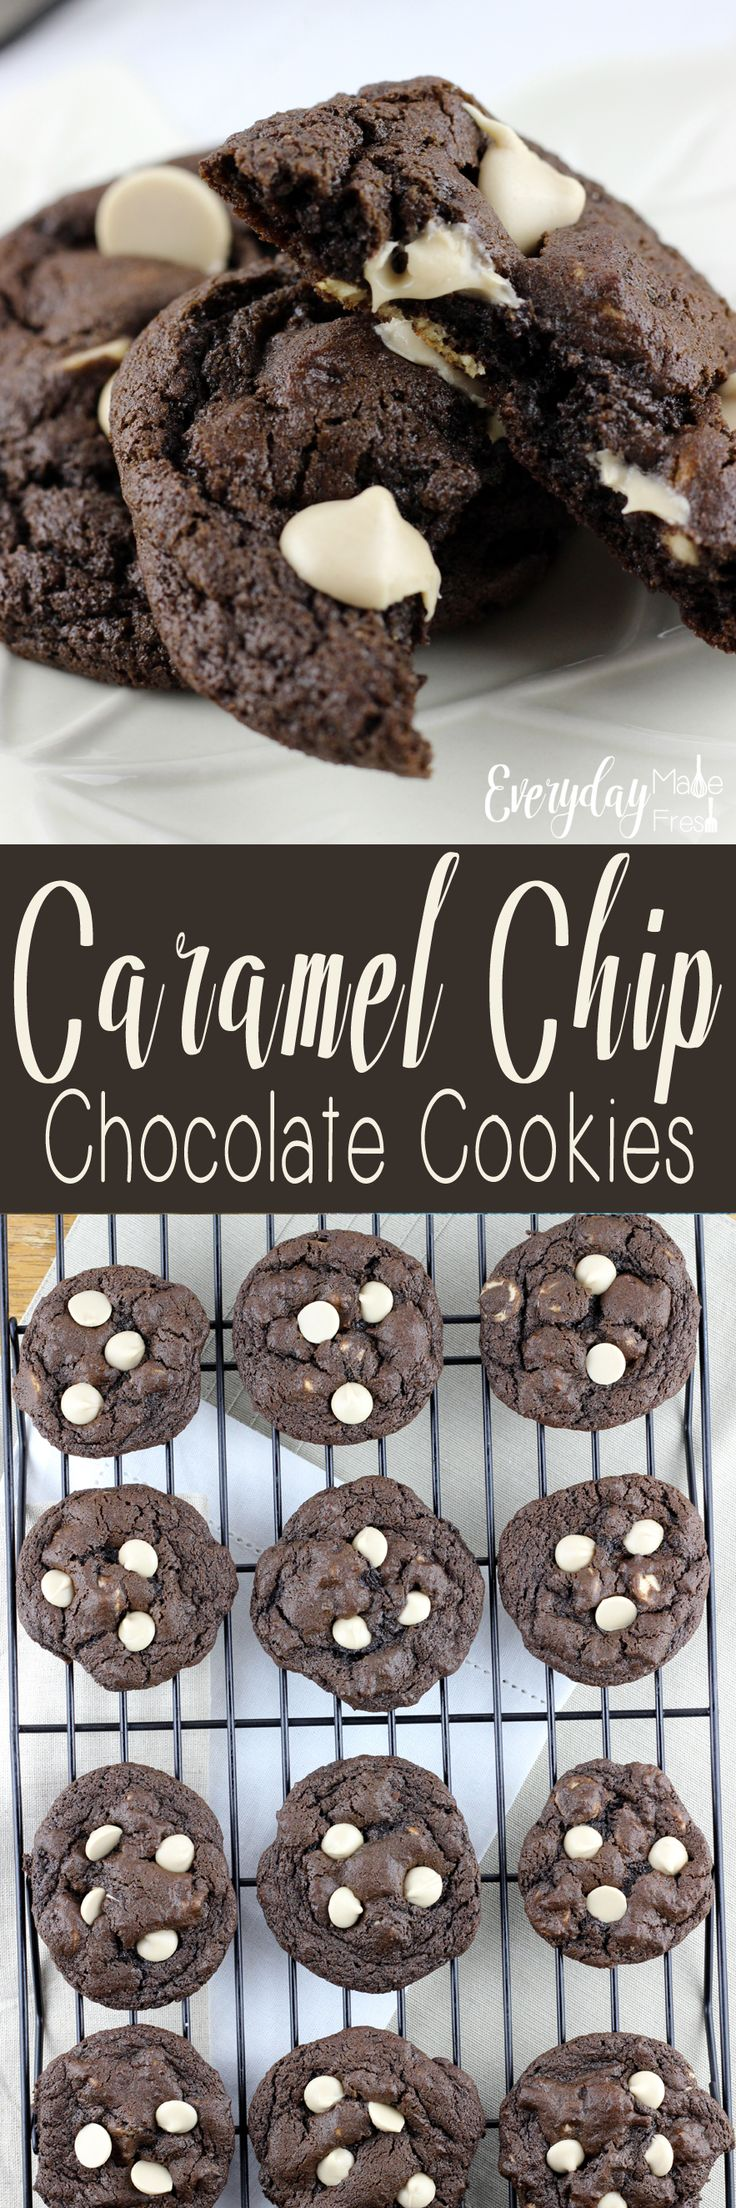 Fudgy, chewy, and with the perfect caramel touch - These Caramel Chip Chocolate Cookies are perfect in every way! | EverydayMadeFresh.com http://www.everydaymadefresh.com/caramel-chip-chocolate-cookies/